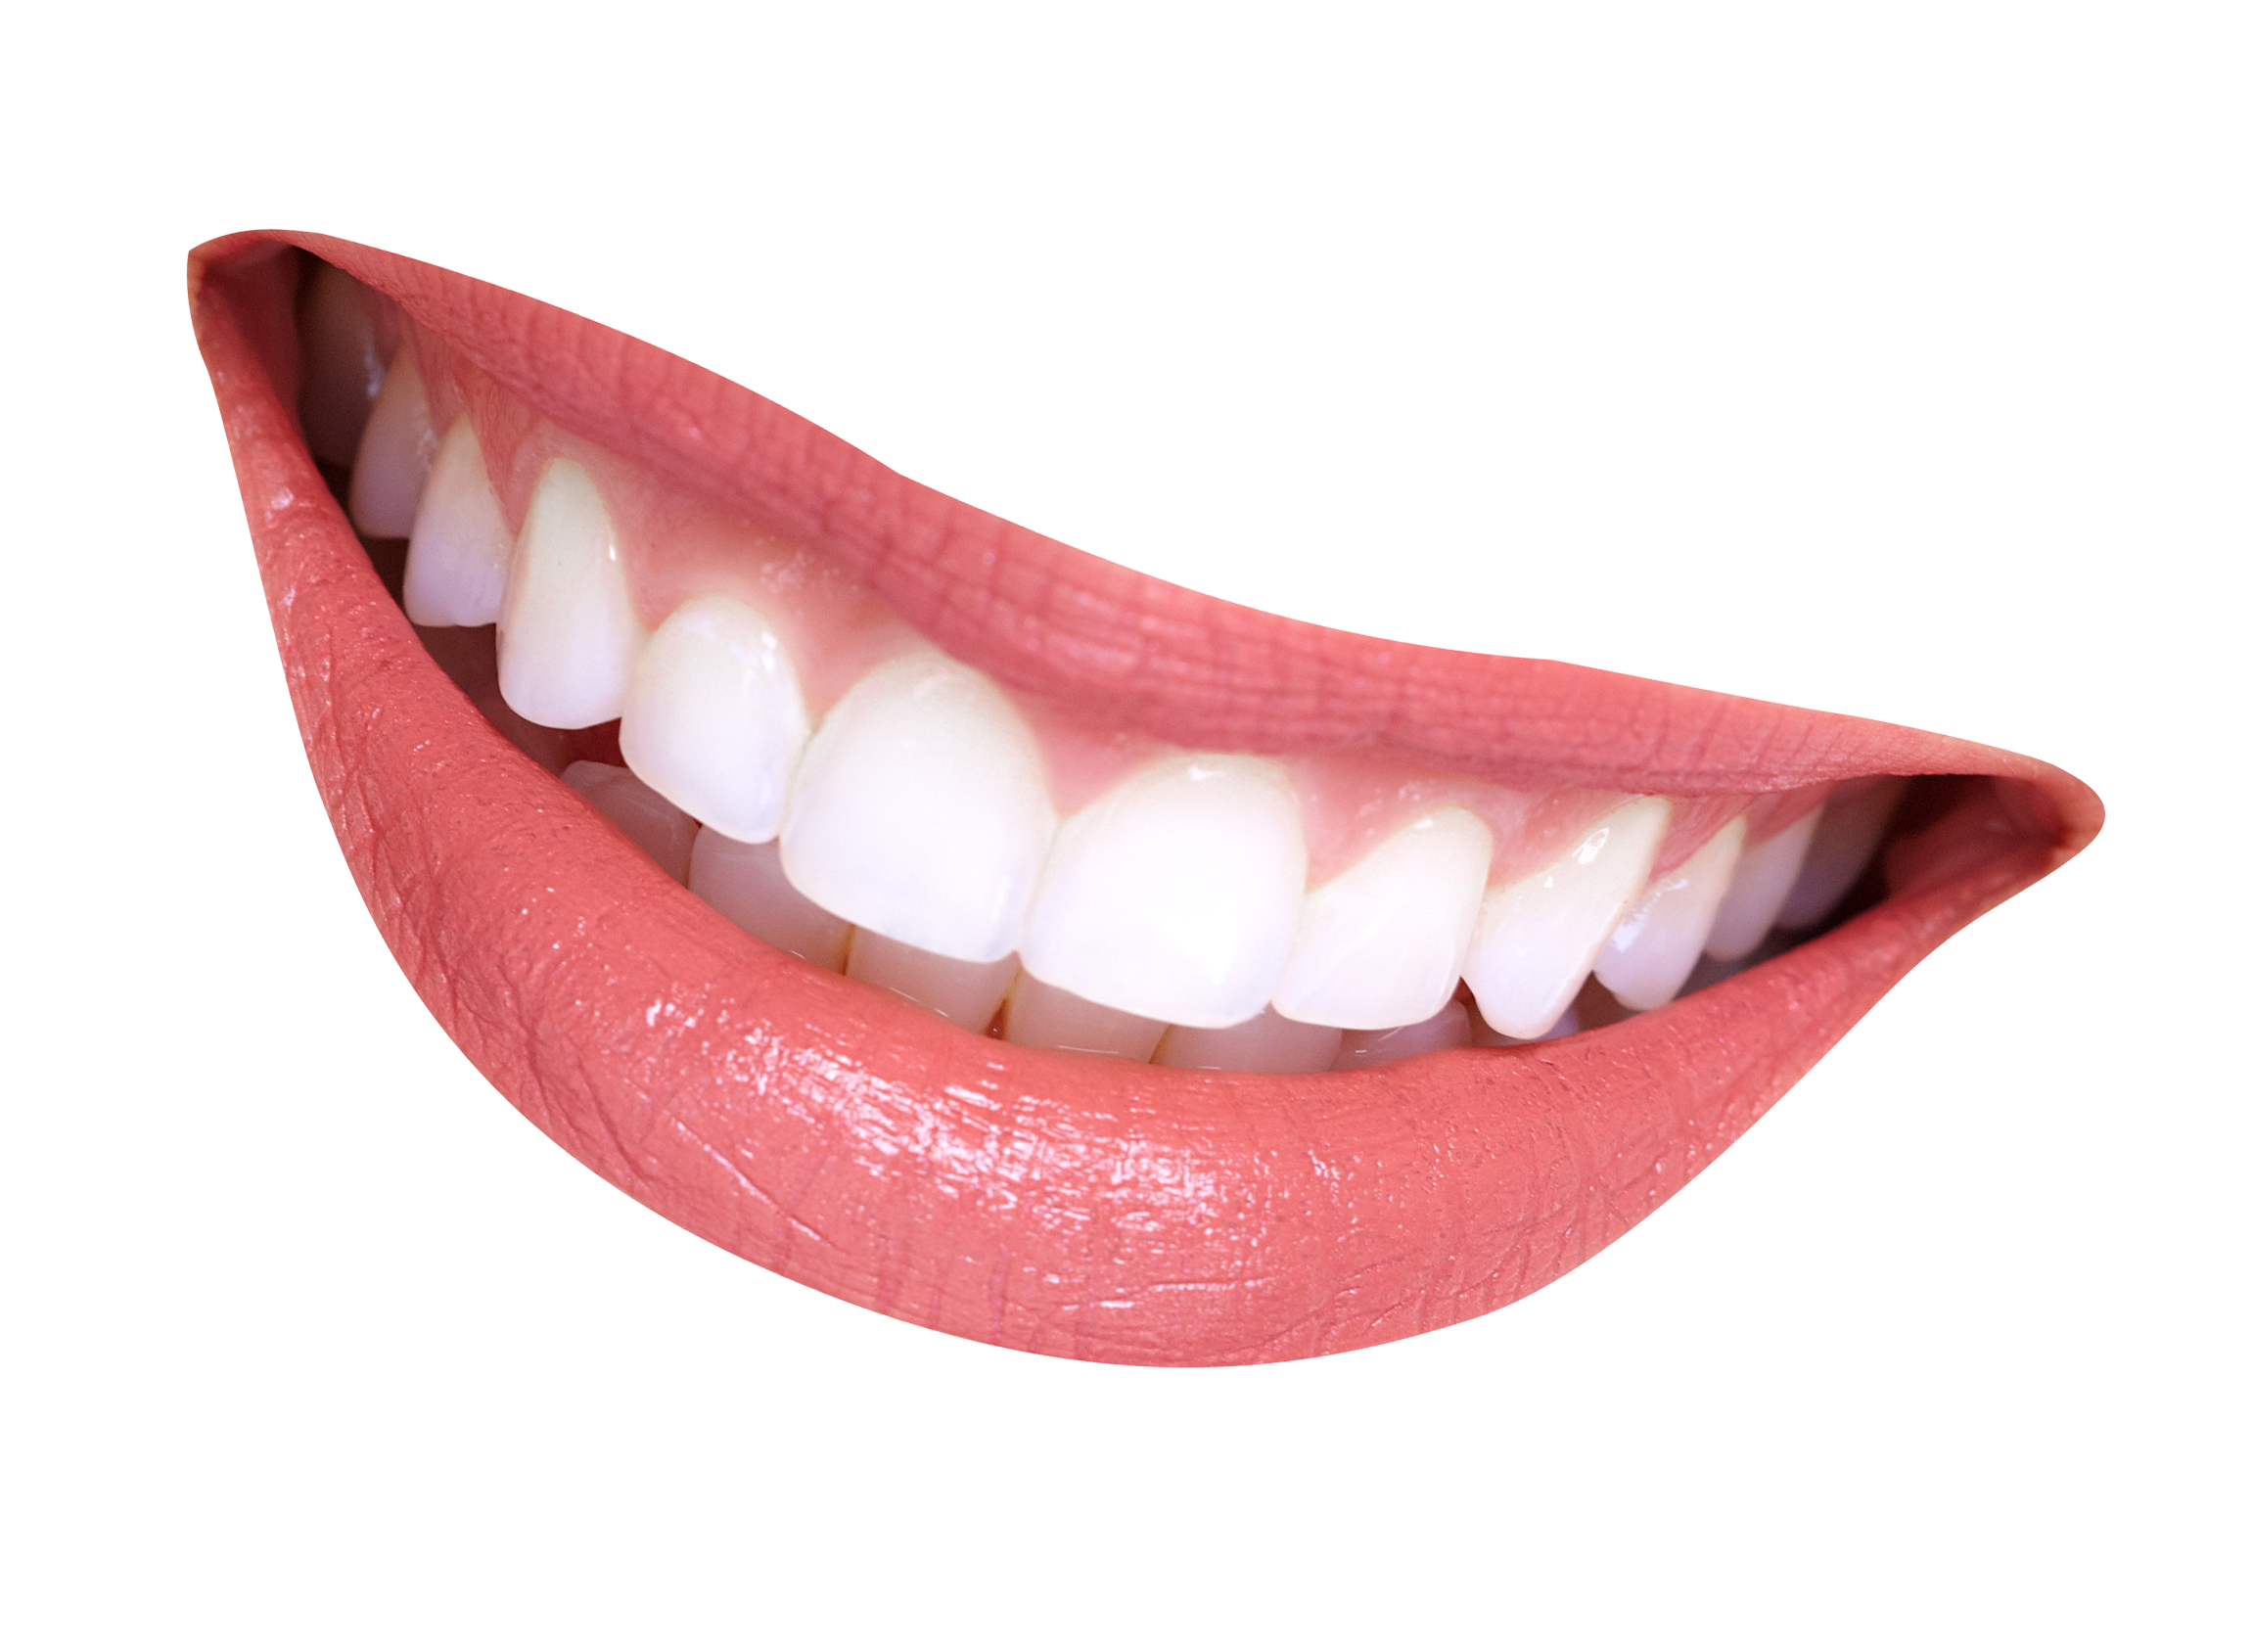 Tooth, Mouth Teeth In Png image #46530